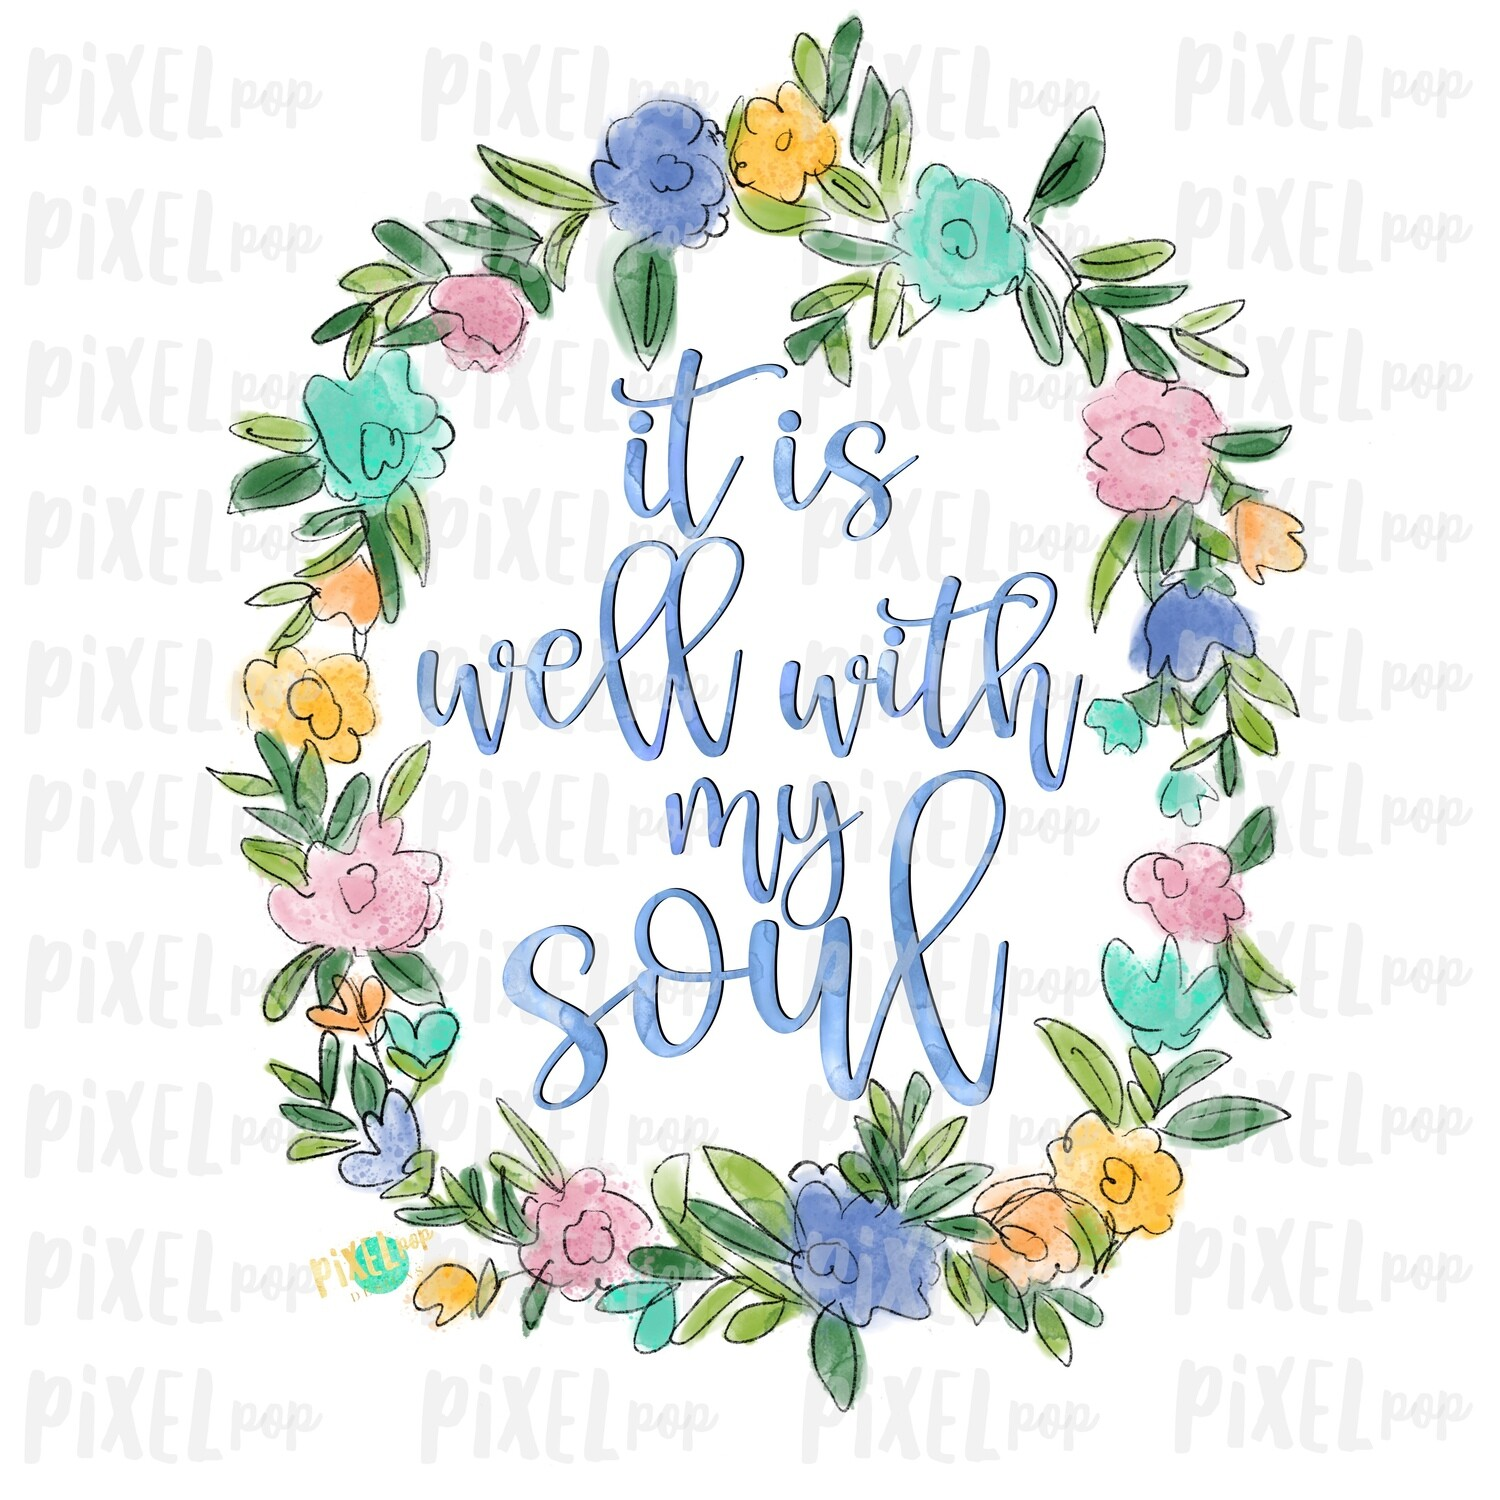 It is Well with My Soul Watercolor Floral Wreath Sublimation PNG   Digital Painting   Spring Flowers   Flower Wreath   Watercolor Floral Art